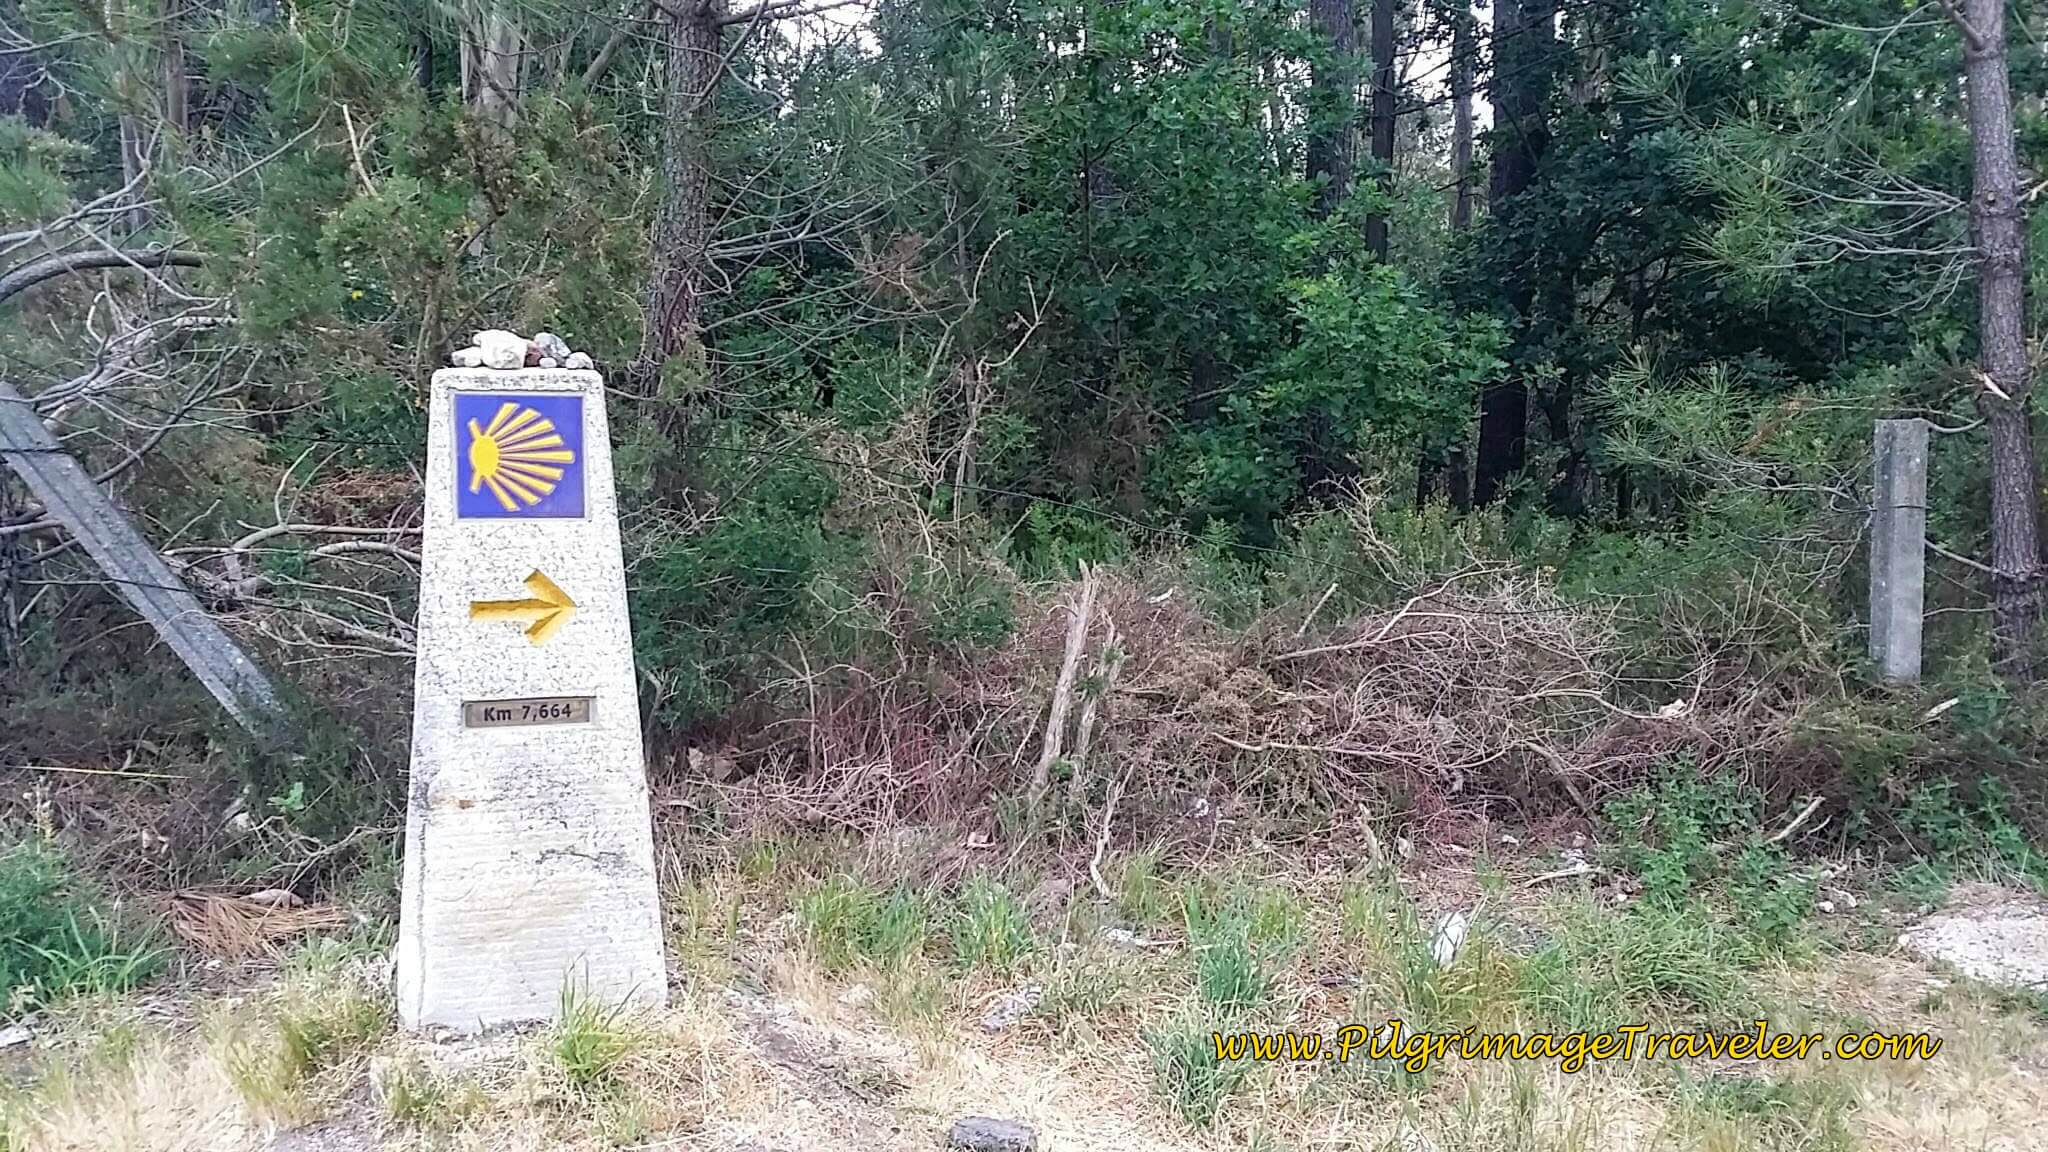 Surprising Path in the Middle of Milladoiro on day twenty-five of the Camino Portugués